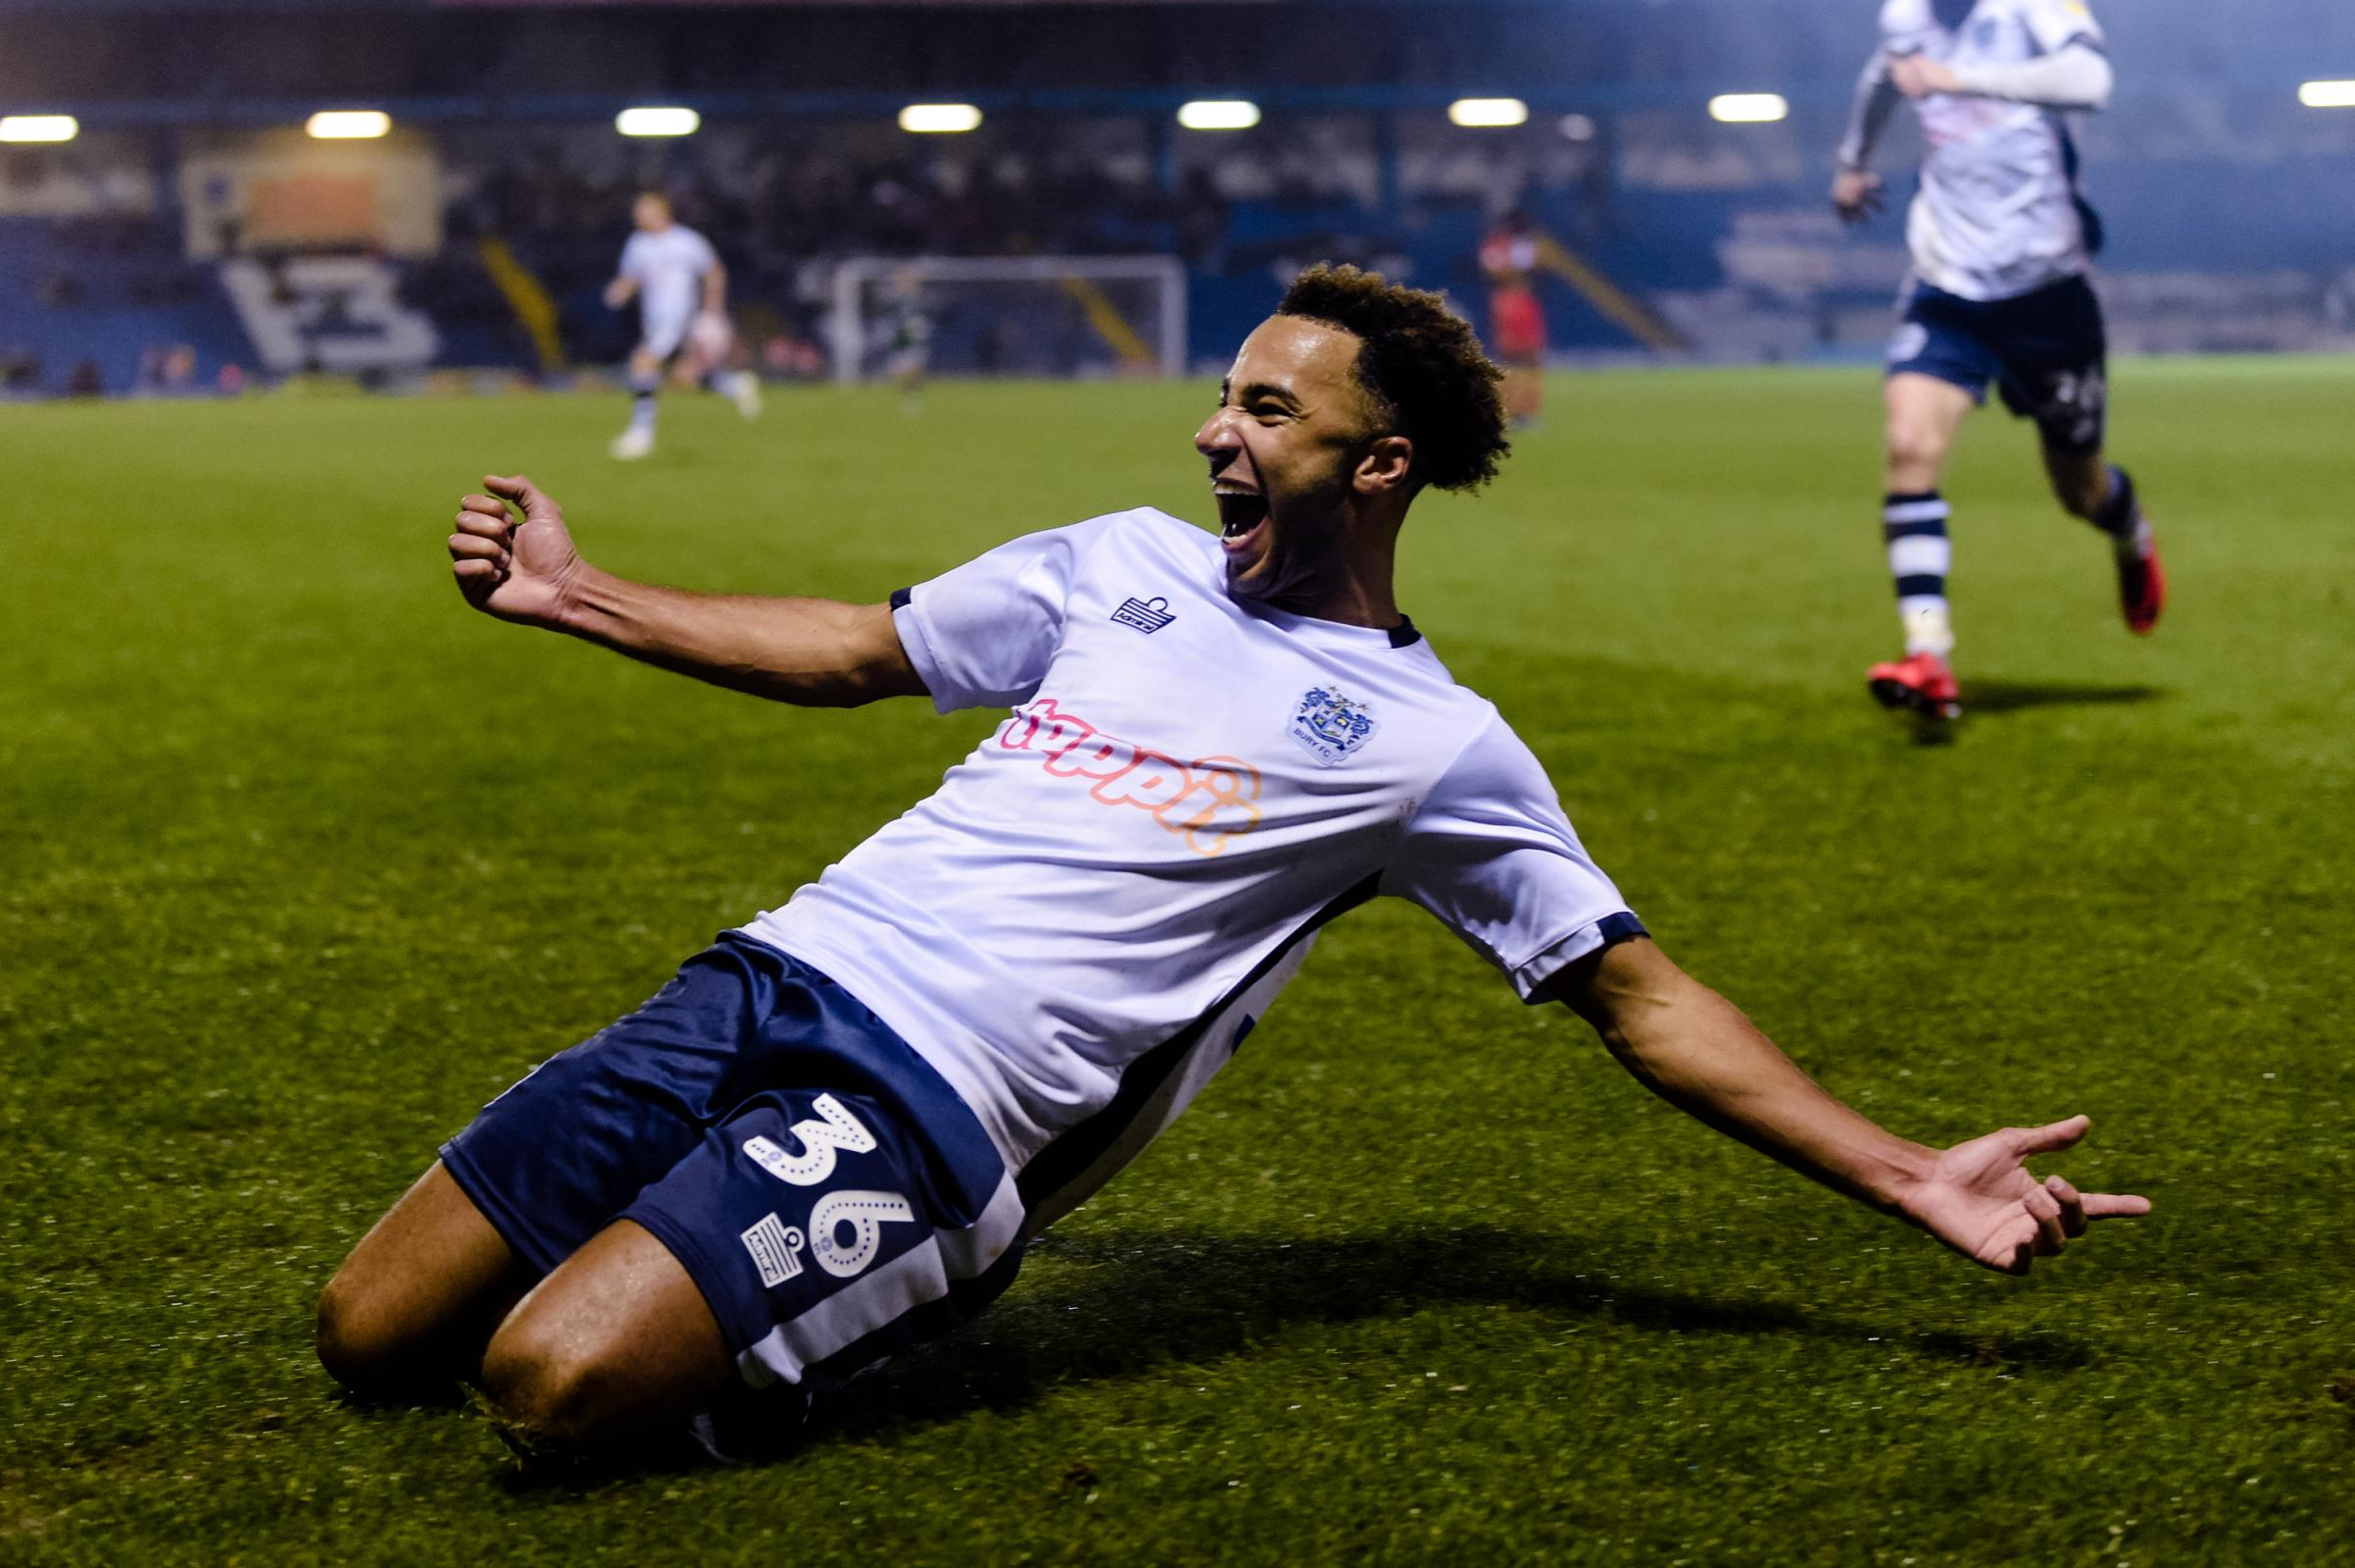 PICTURES: Images from The Shakers stunning win over MK Dons